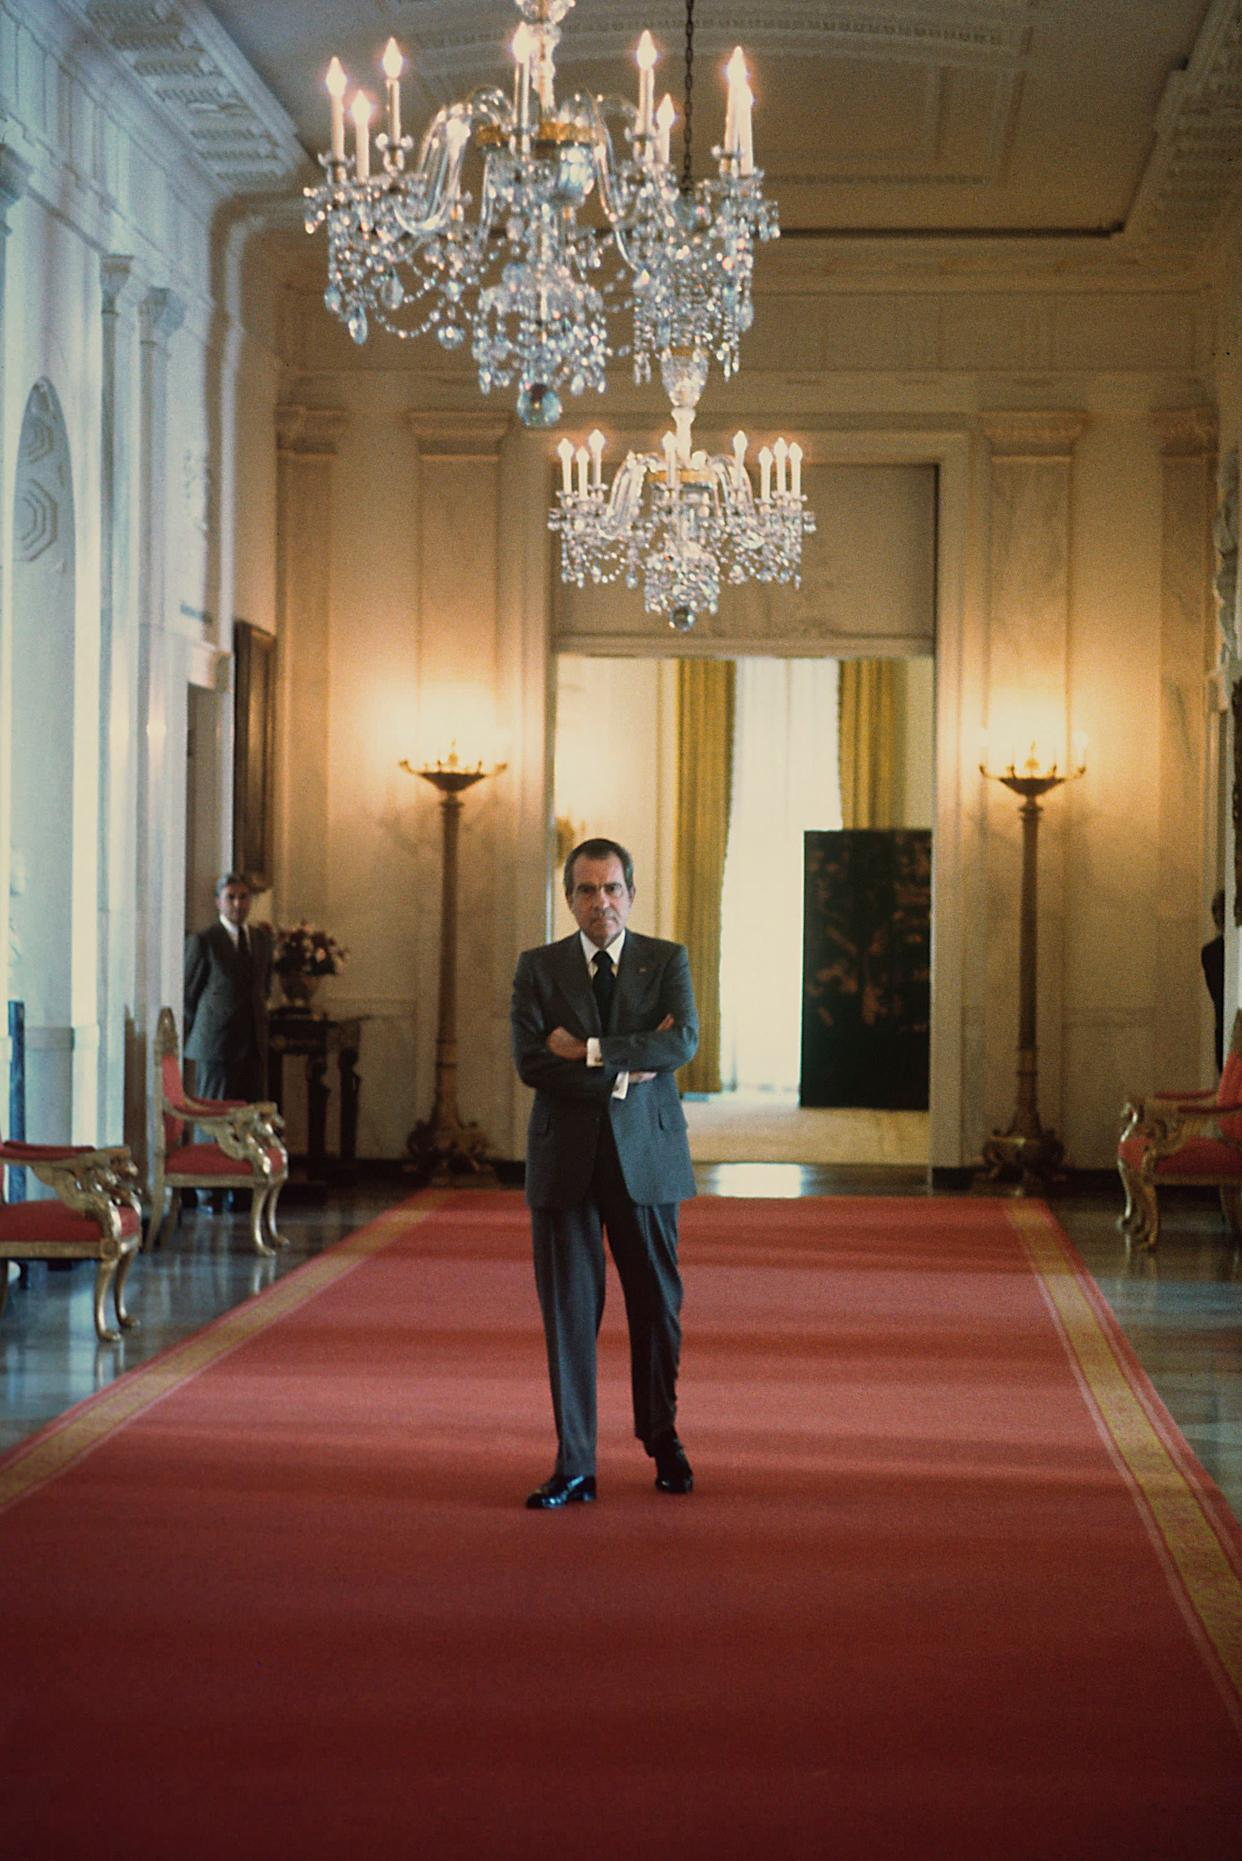 WASHINGTON - JANUARY 1974: (NO U.S. TABLOID SALES) U.S. President Richard Nixon waits in the hallway outside the East Room of the White House to give a press conference in January 1974 Washington, DC. (Photo by David Hume Kennerly/Getty Images)